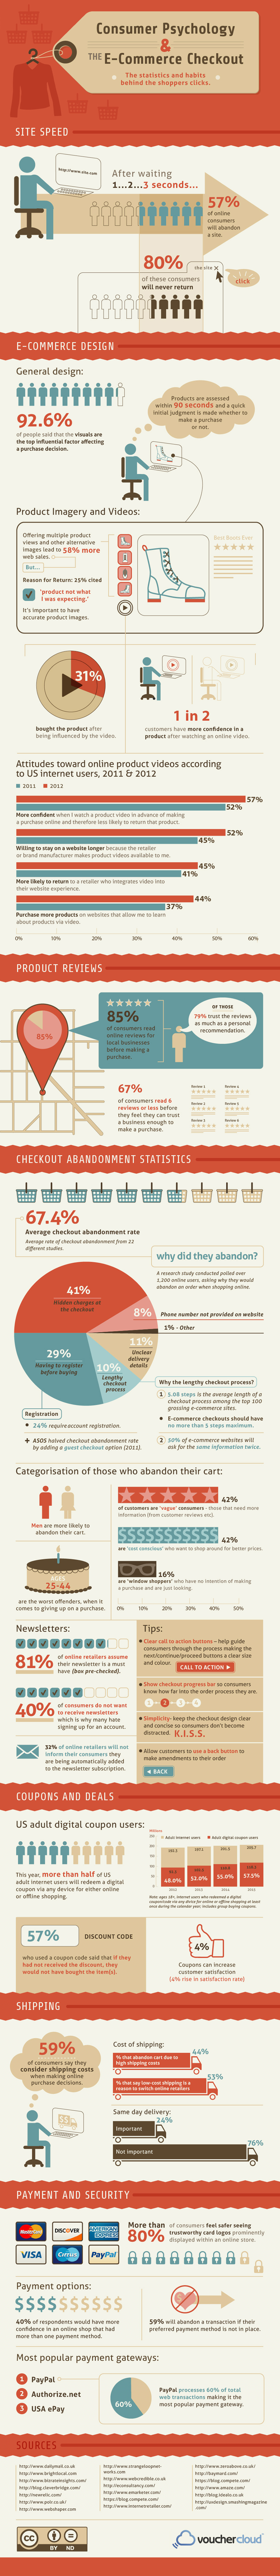 Consumer-Psychology-and-ECommerce-Checkouts-Infographic.jpg